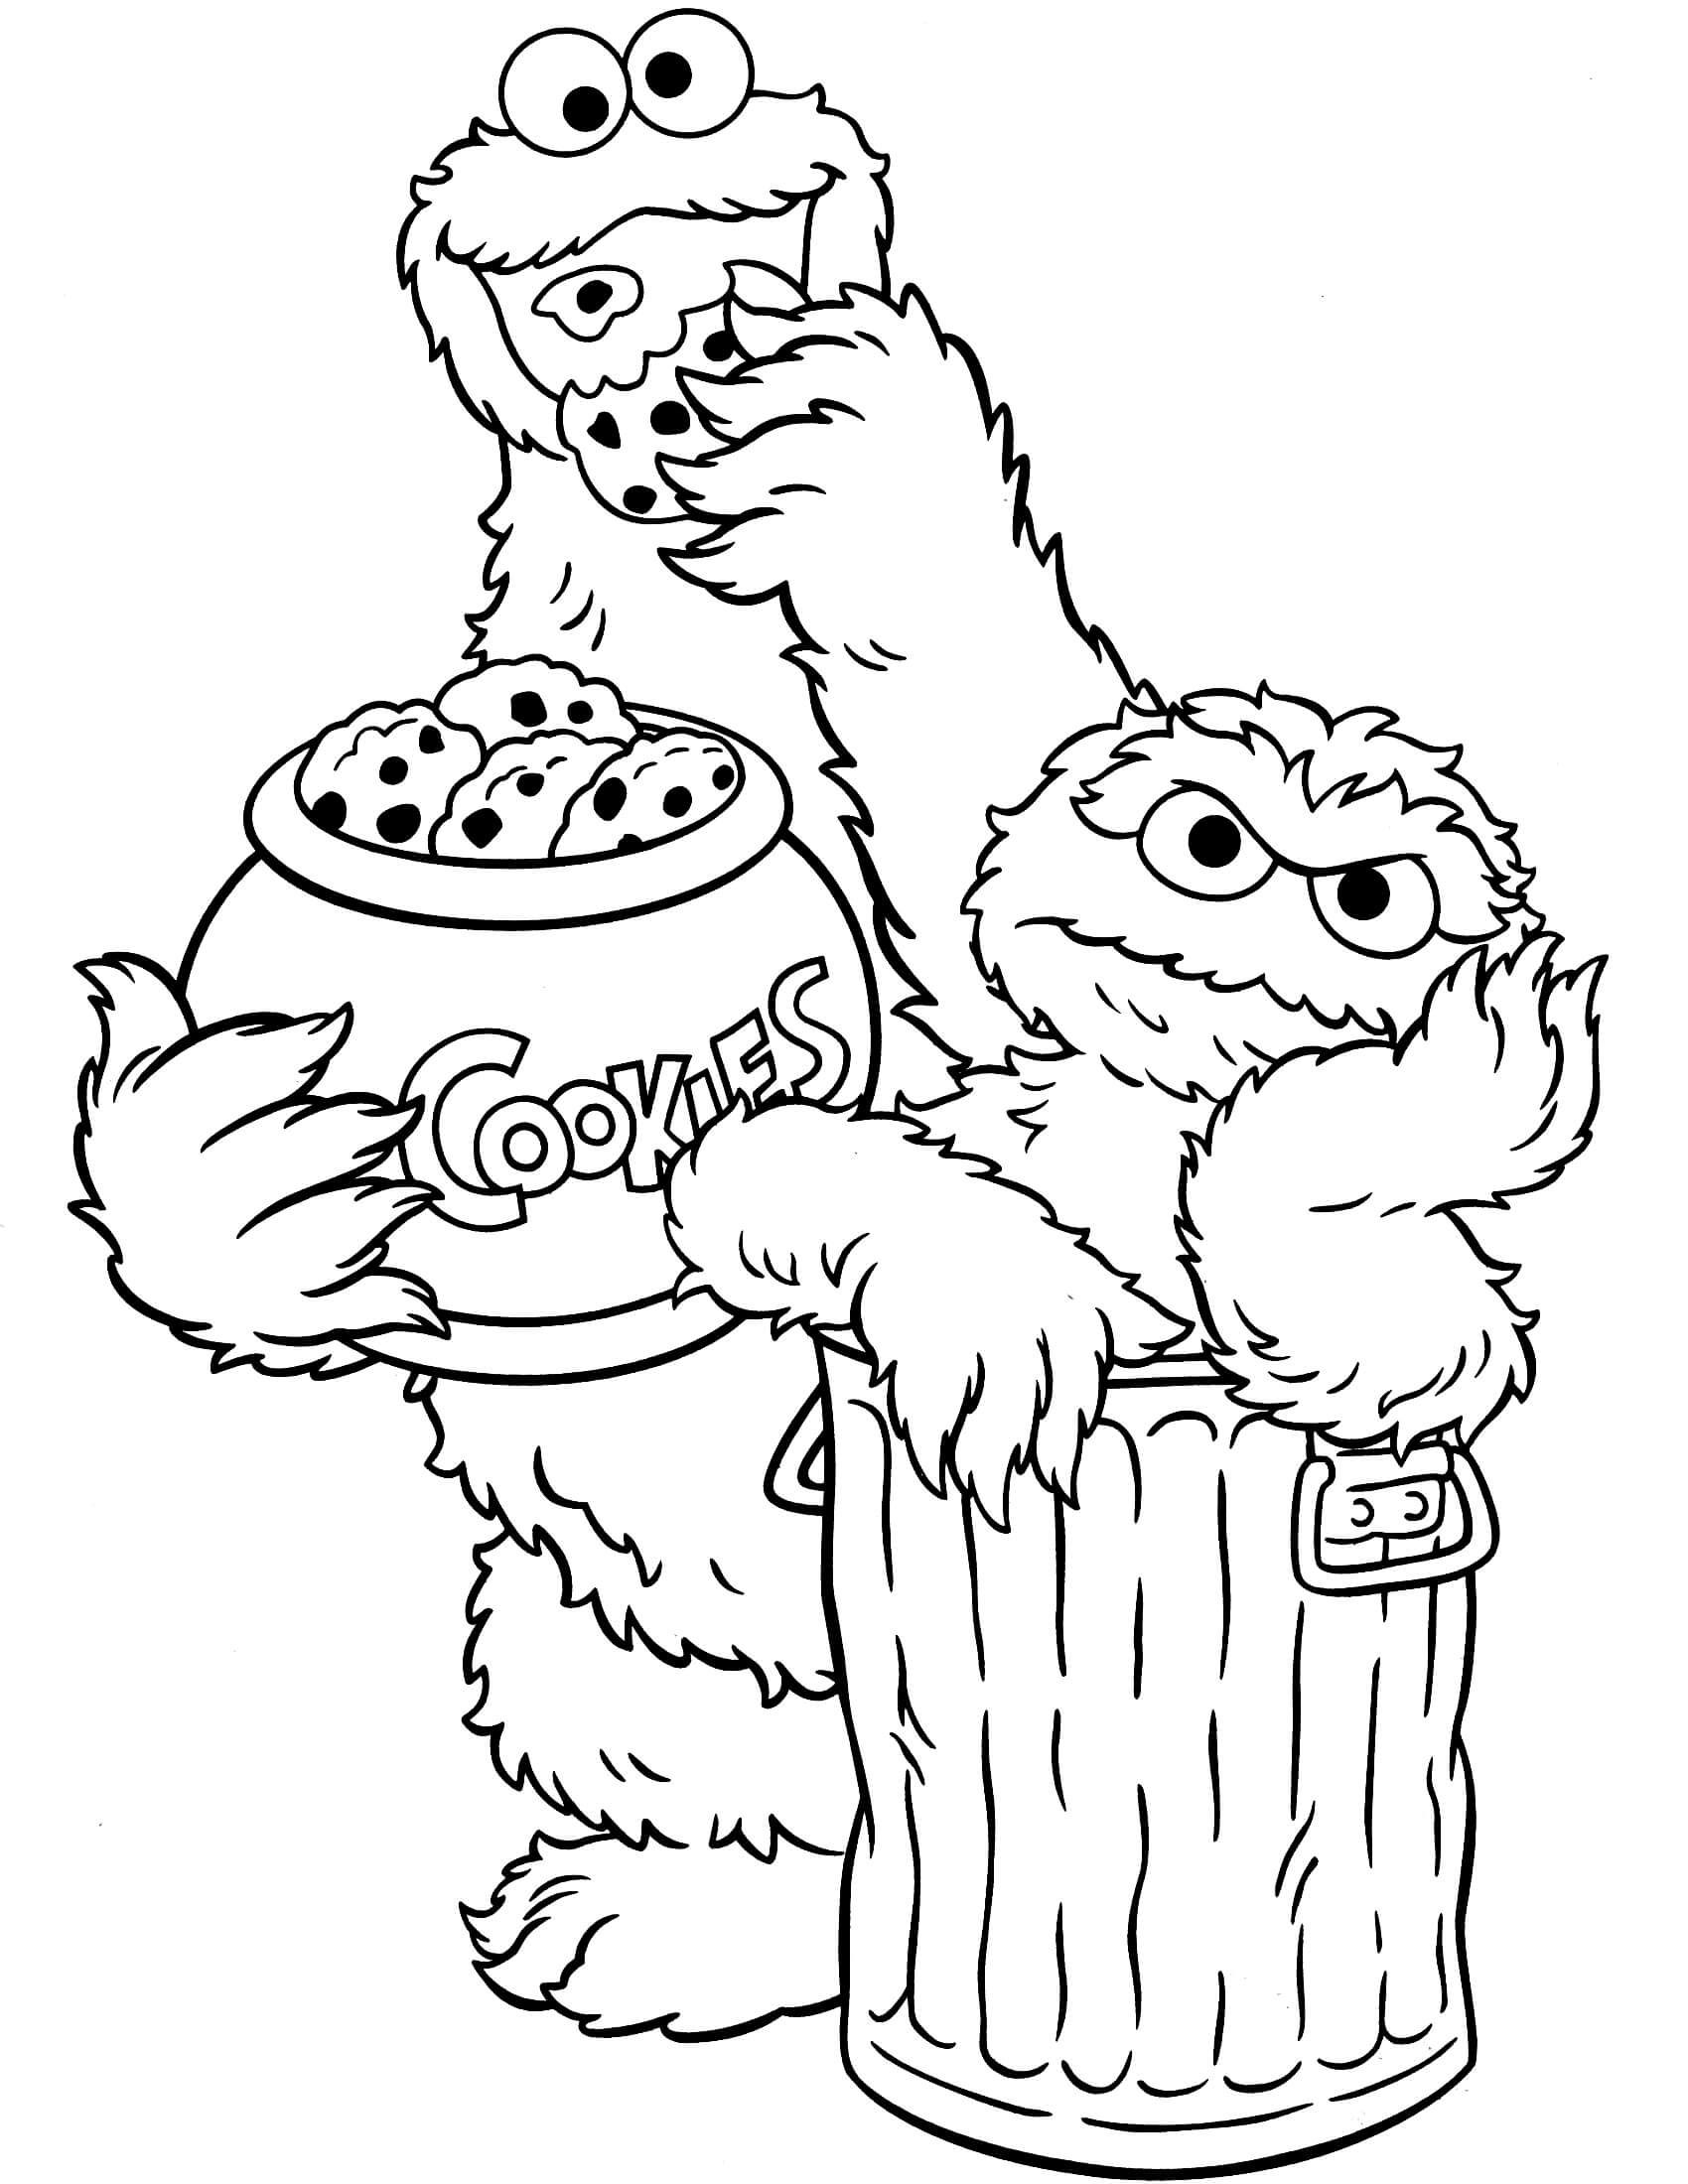 Sesame Street 15 Coloringcolor In